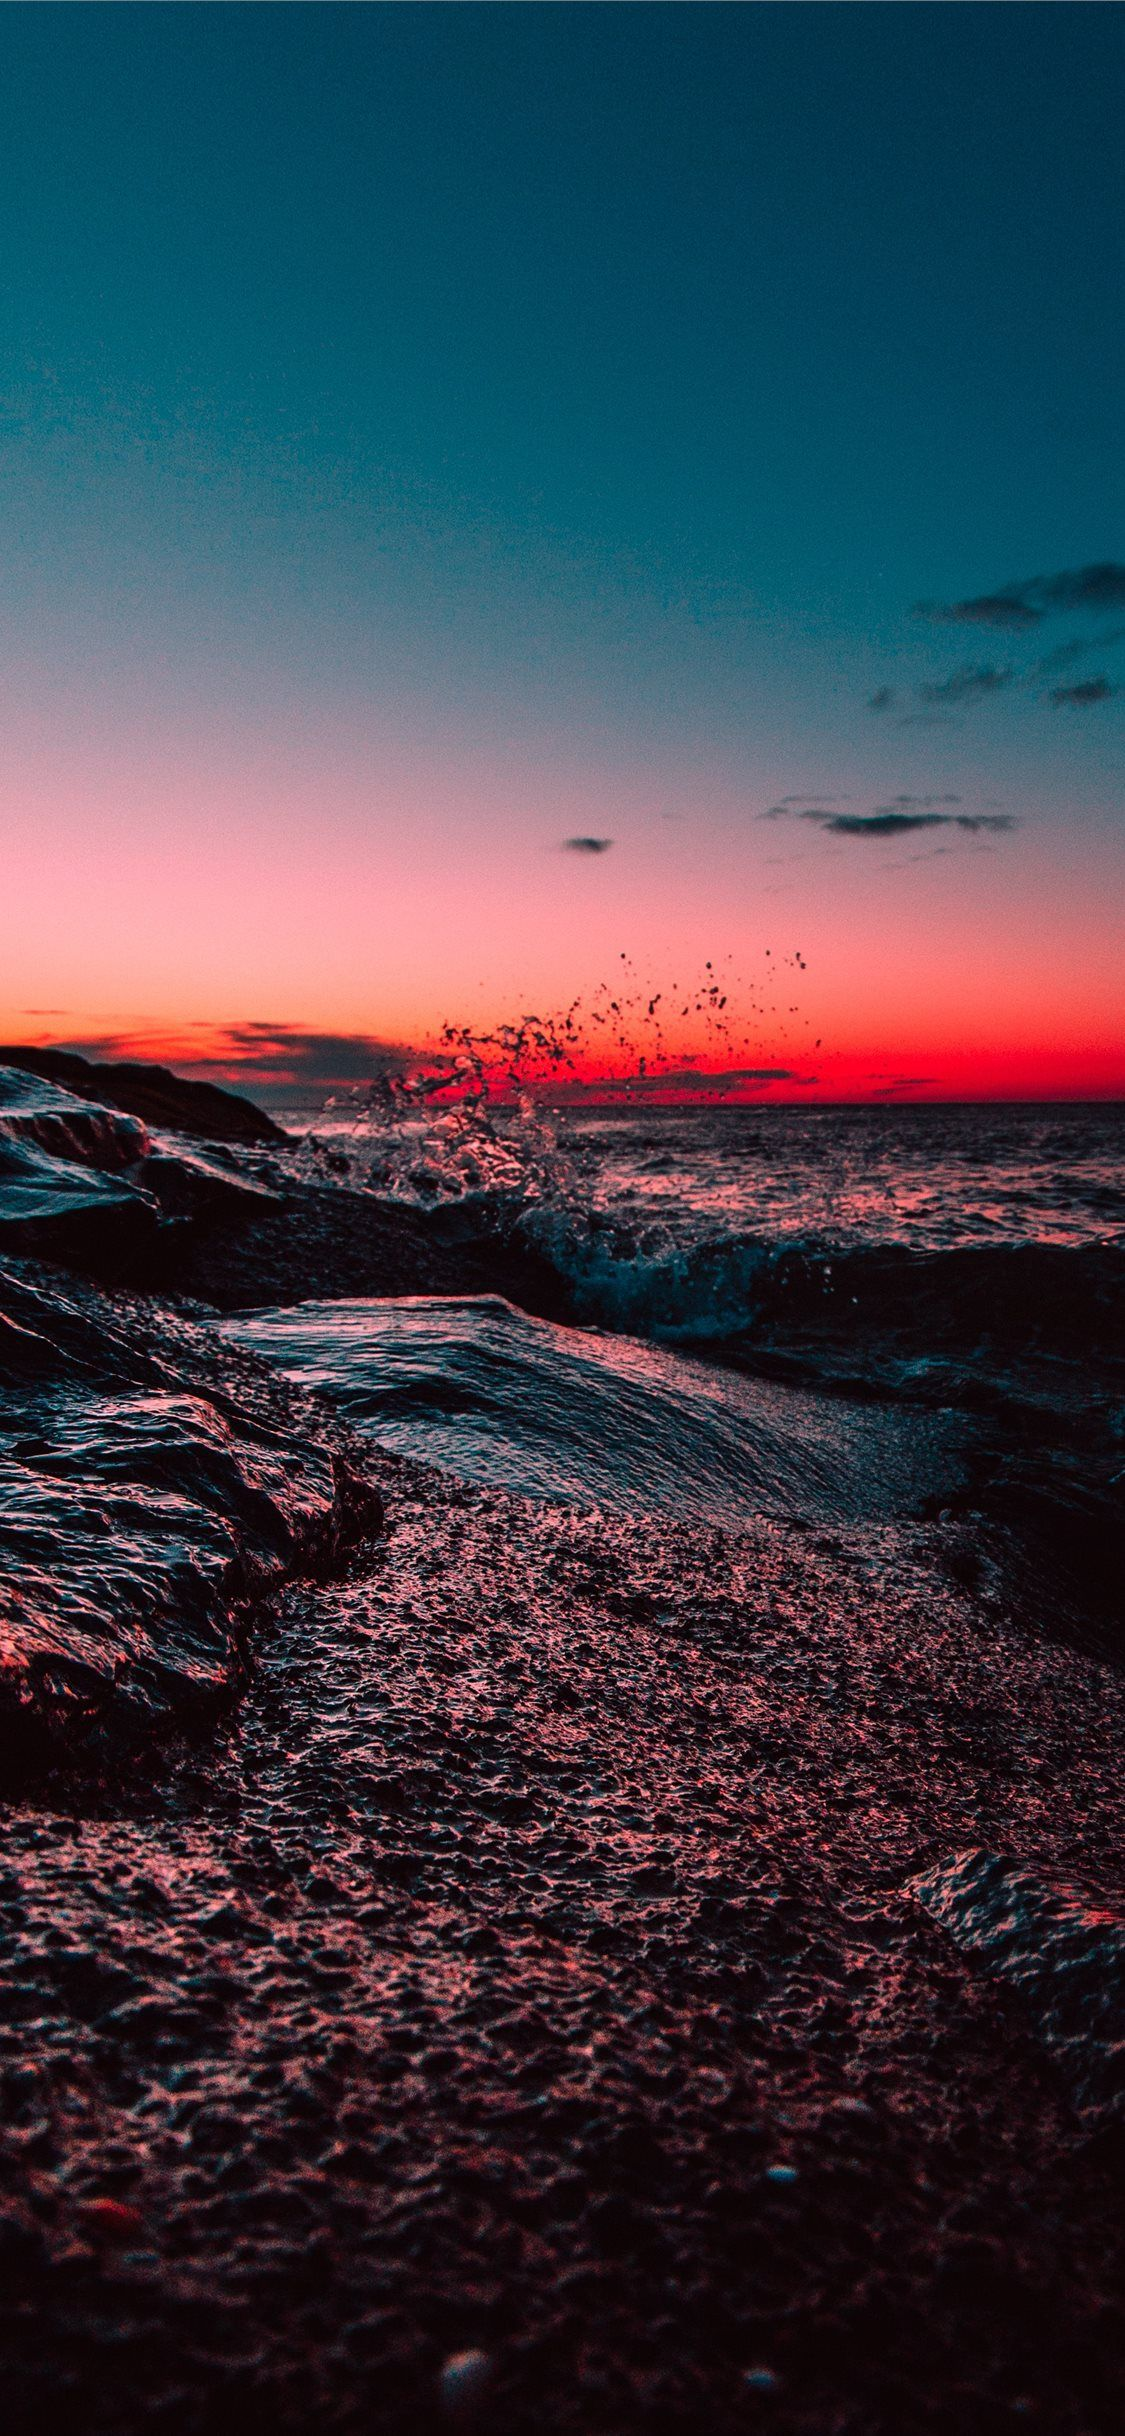 Body Of Water During Sunset Sunset Sky Landscape Beach Wave United States Nature Wallpaper Sunset Wallpaper Background Images Nature